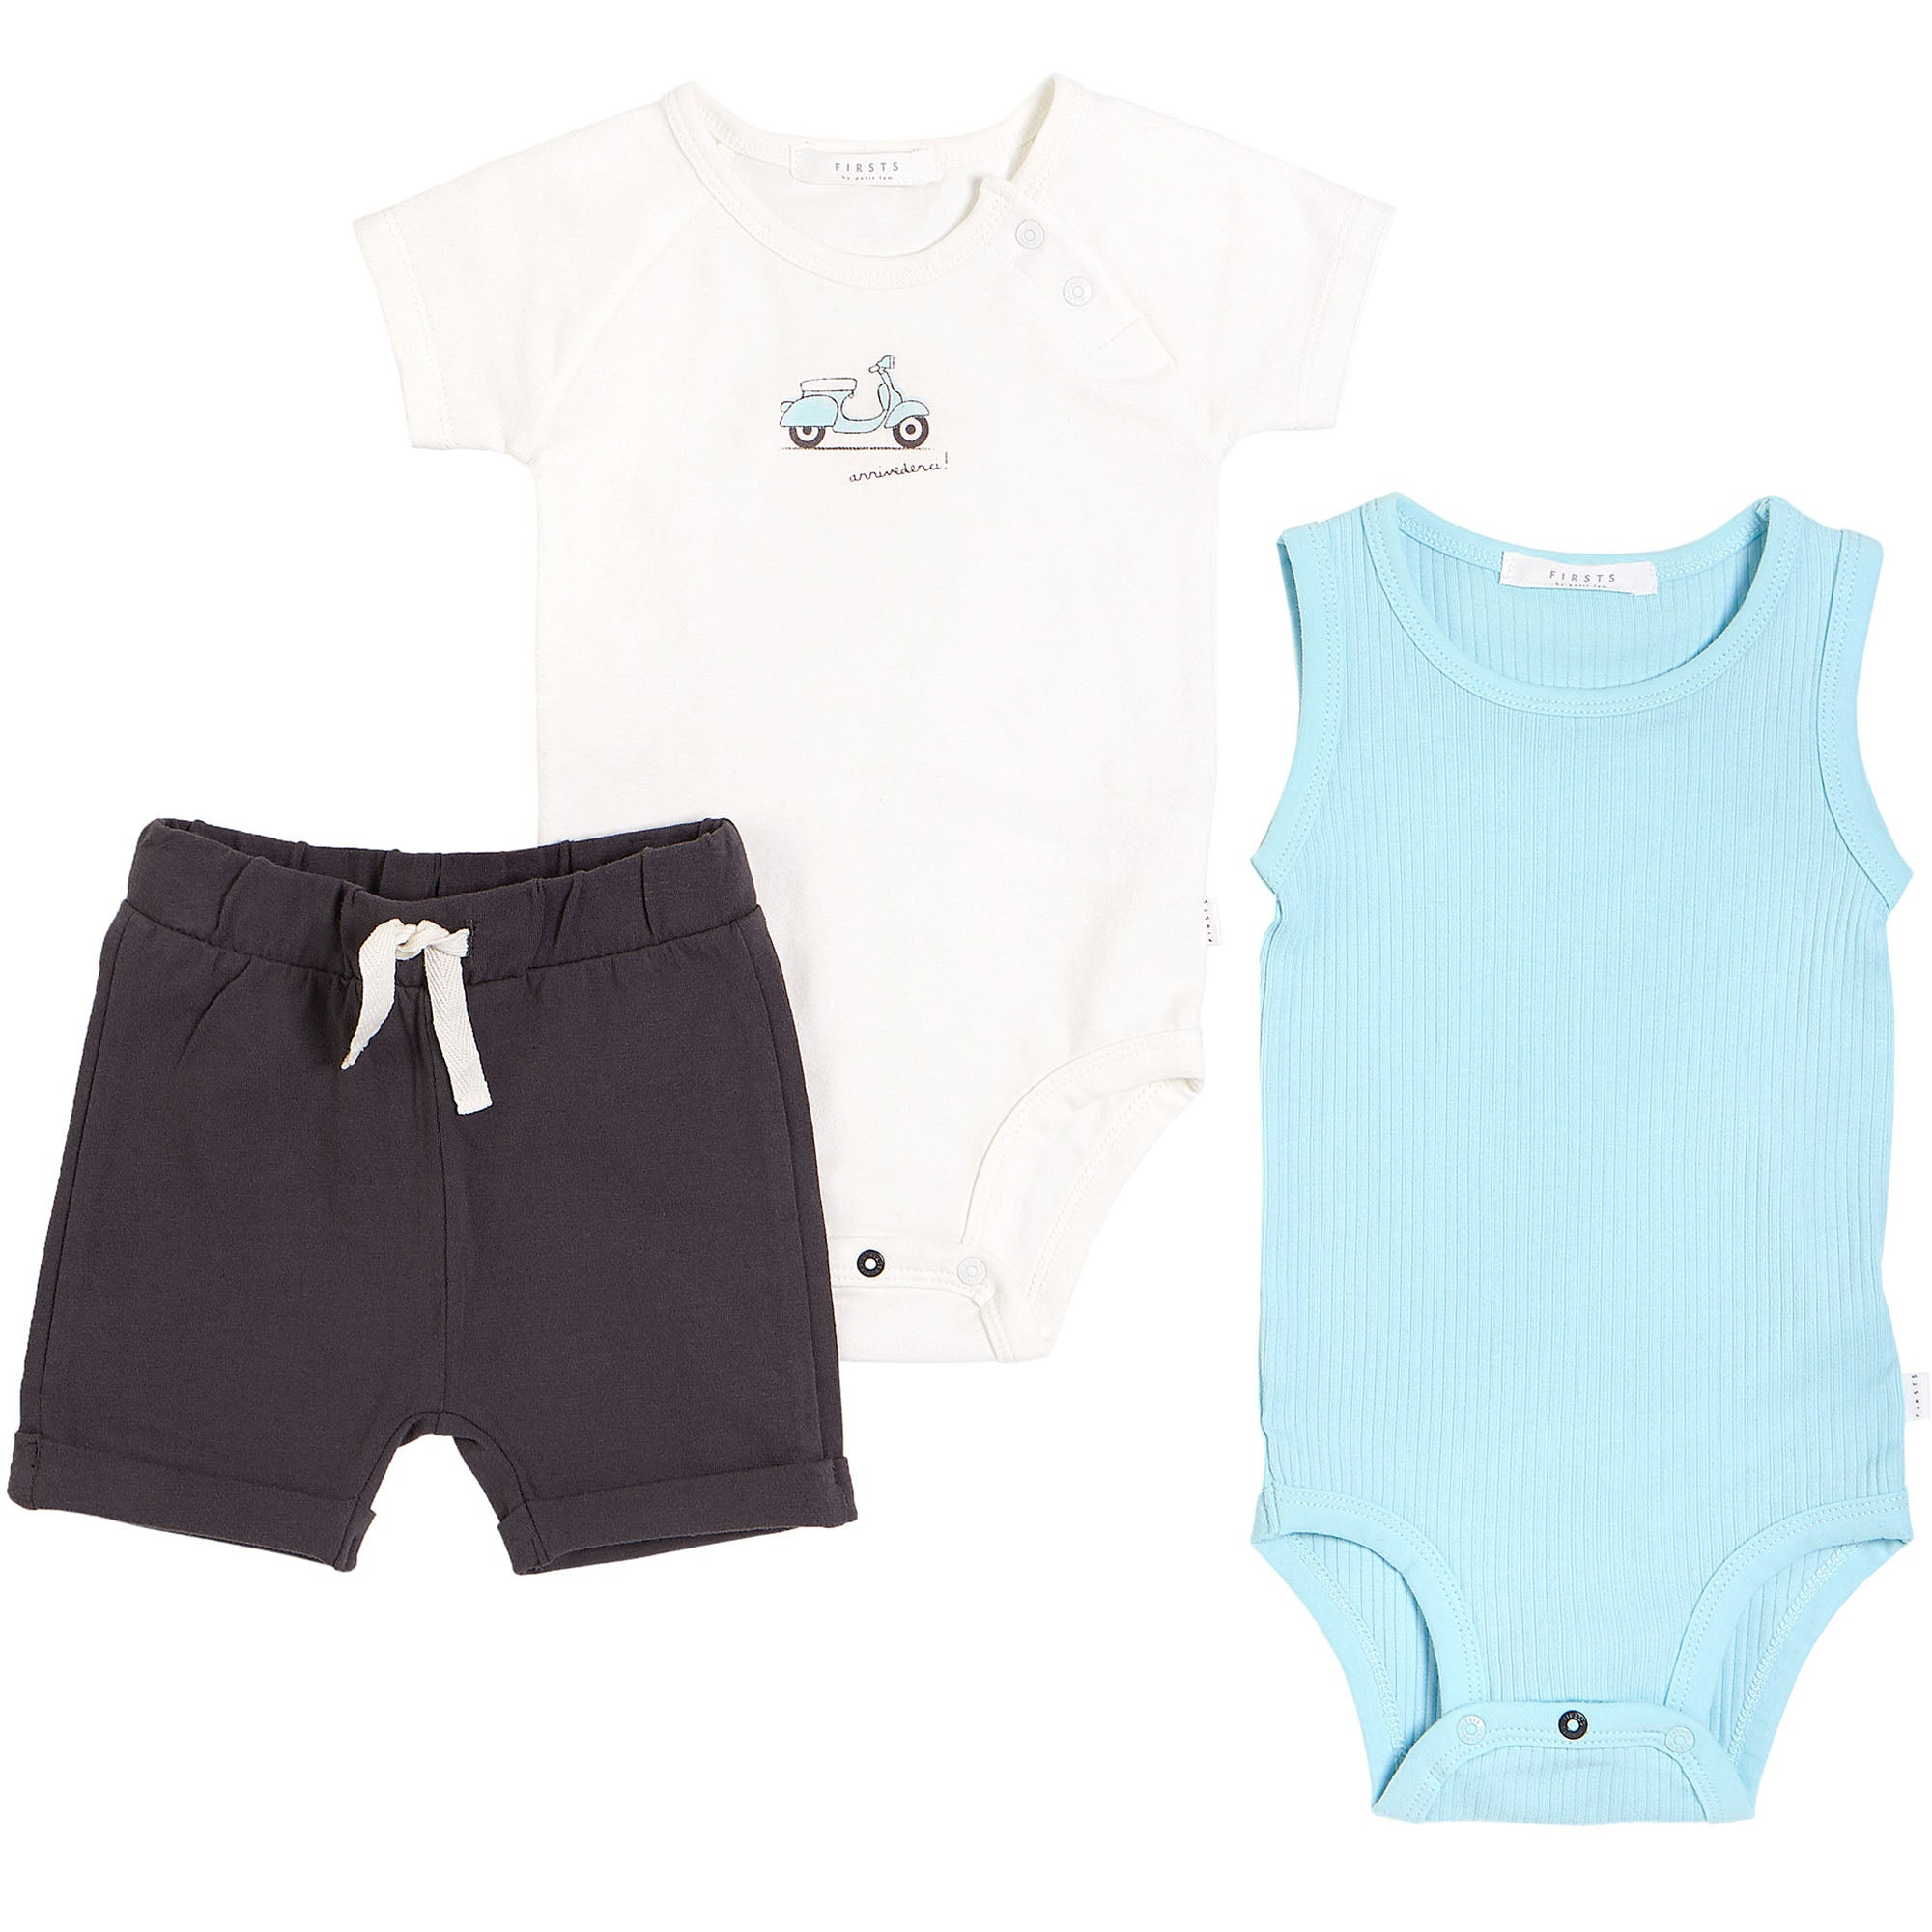 FIRSTS by Petit Lem Organic Baby Summer Outfit Set (3-Piece) - Motorino